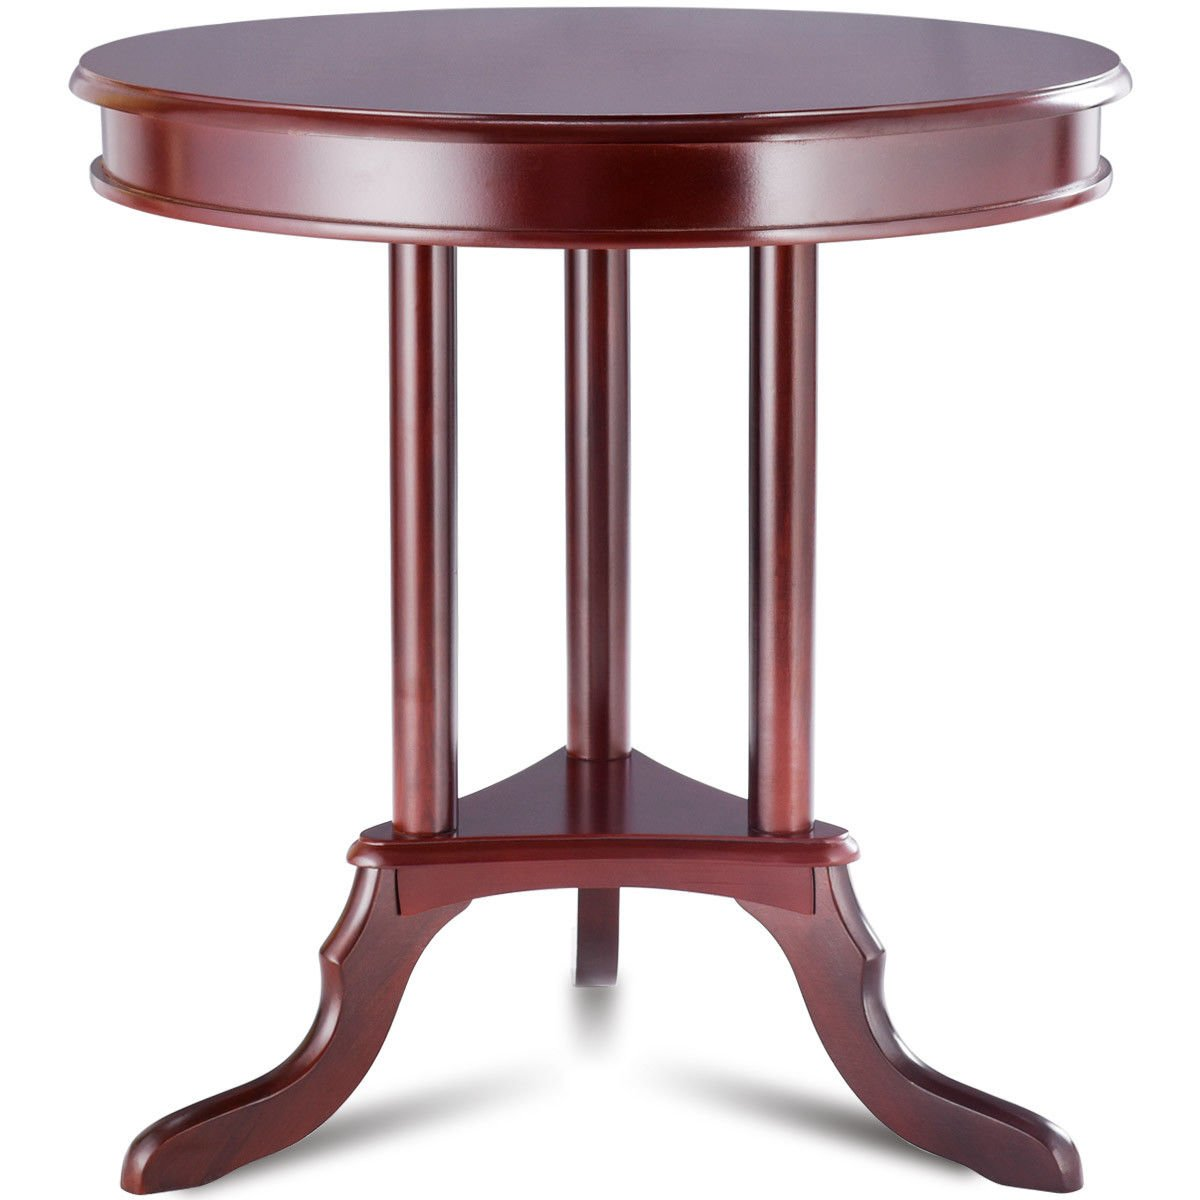 giantex round accent table end side home with shelf furnishing slanted legs kitchen dining target living room tables cherry coffee set clock design tall bistro ethan allen used